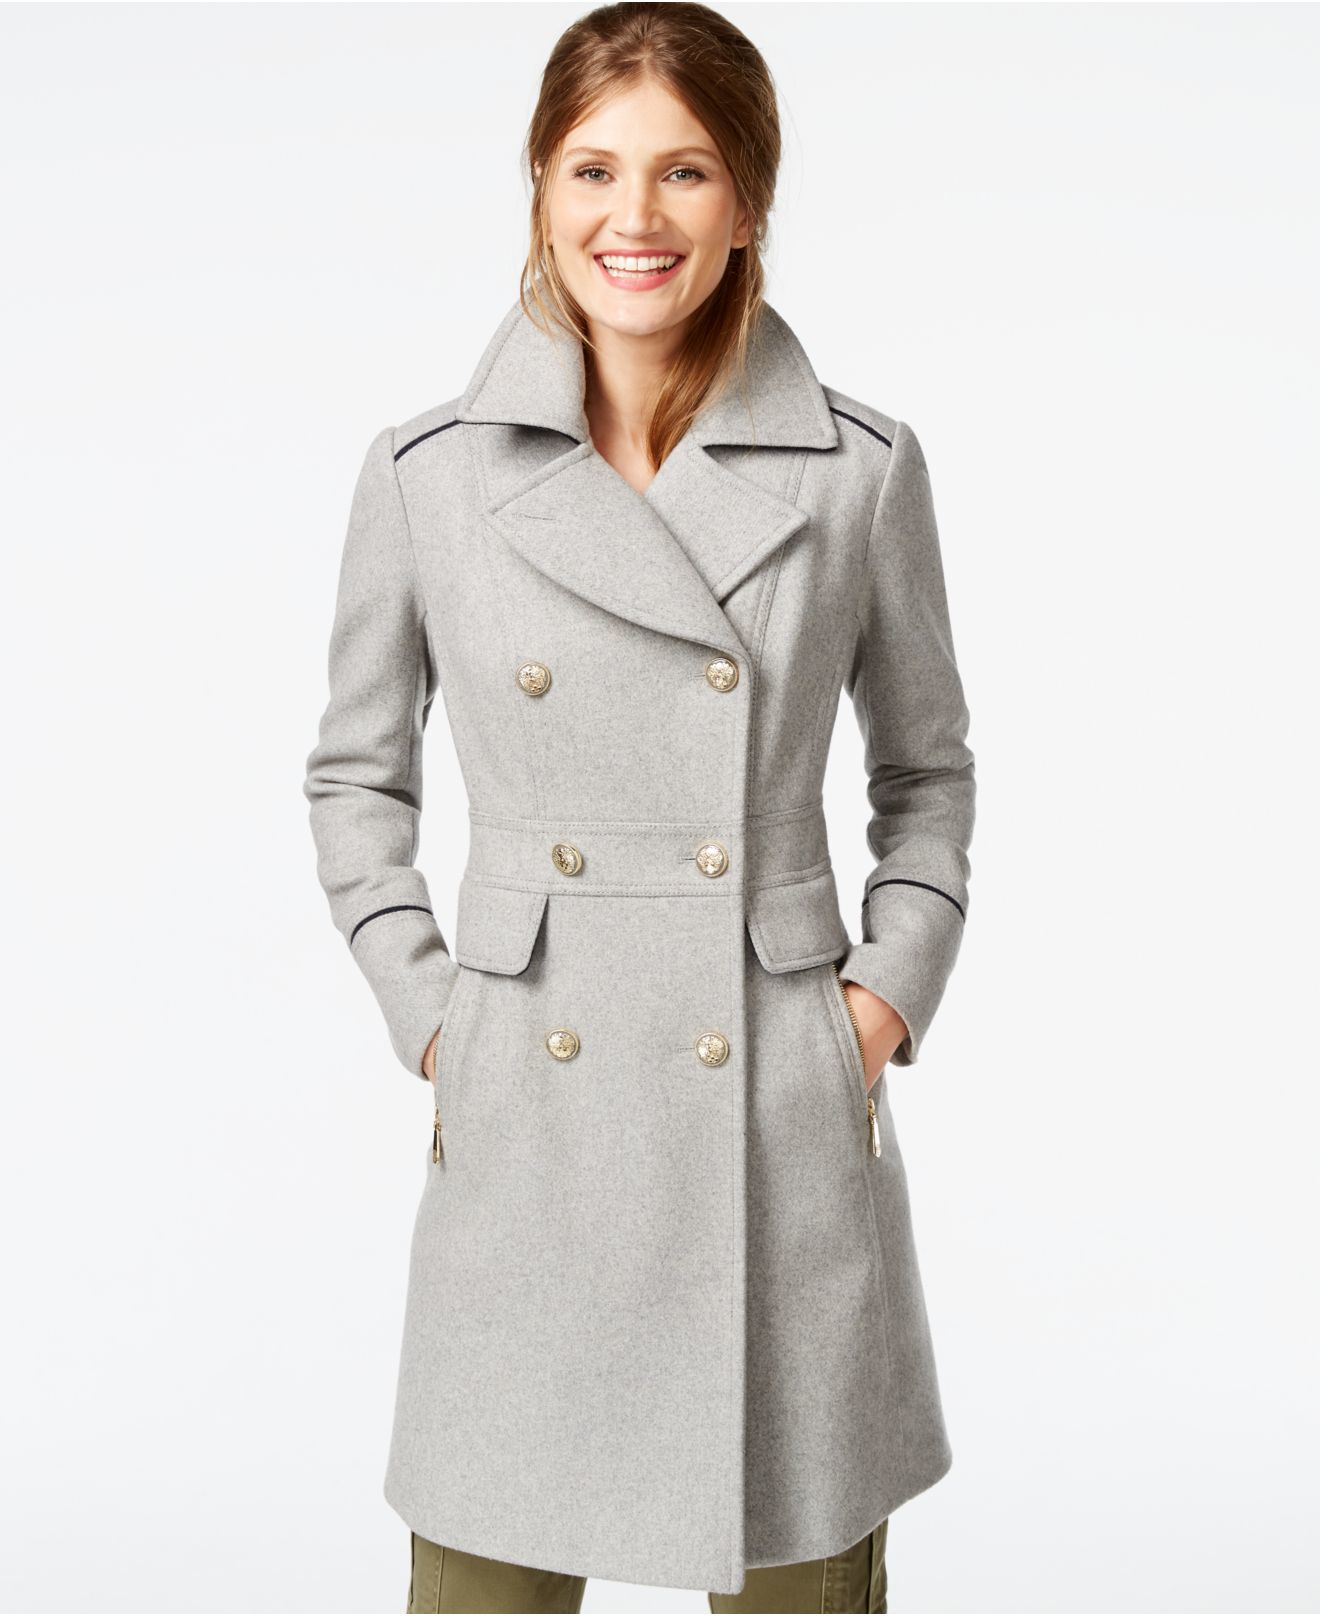 Shop for womens gray jacket online at Target. Free shipping on purchases over $35 and save 5% every day with your Target REDcard.